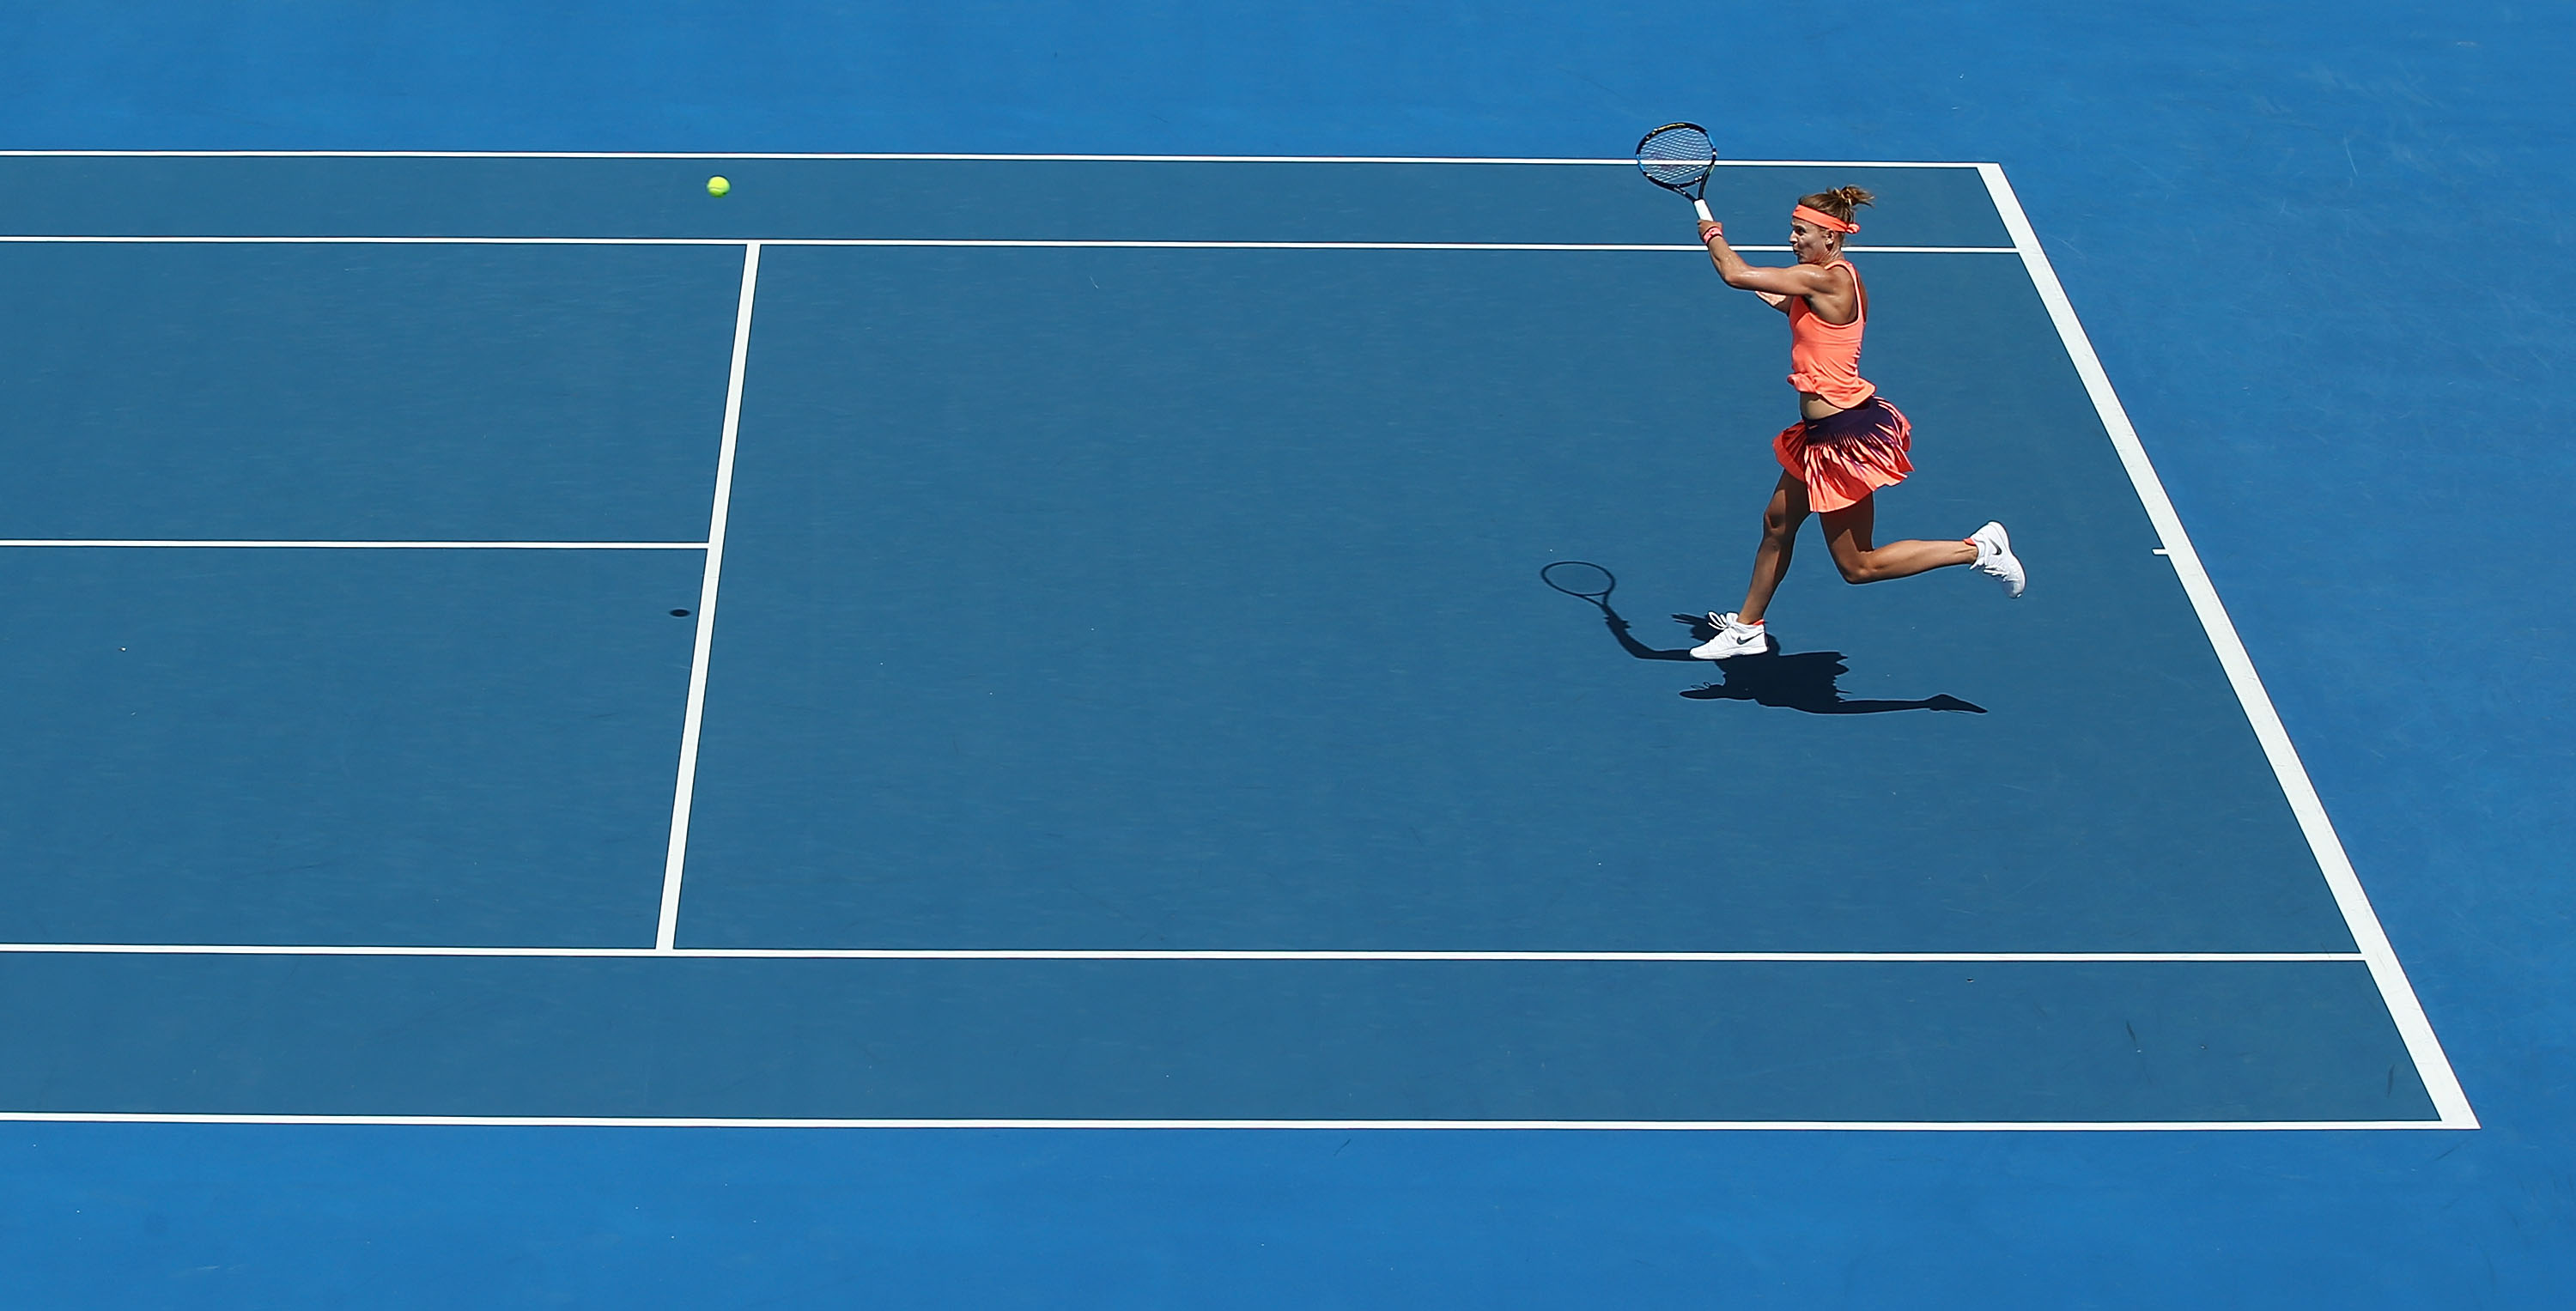 ON THE ATTACK: Lucie Safarova slams a forehand back in play during her second round match on Centre Court; Getty Images